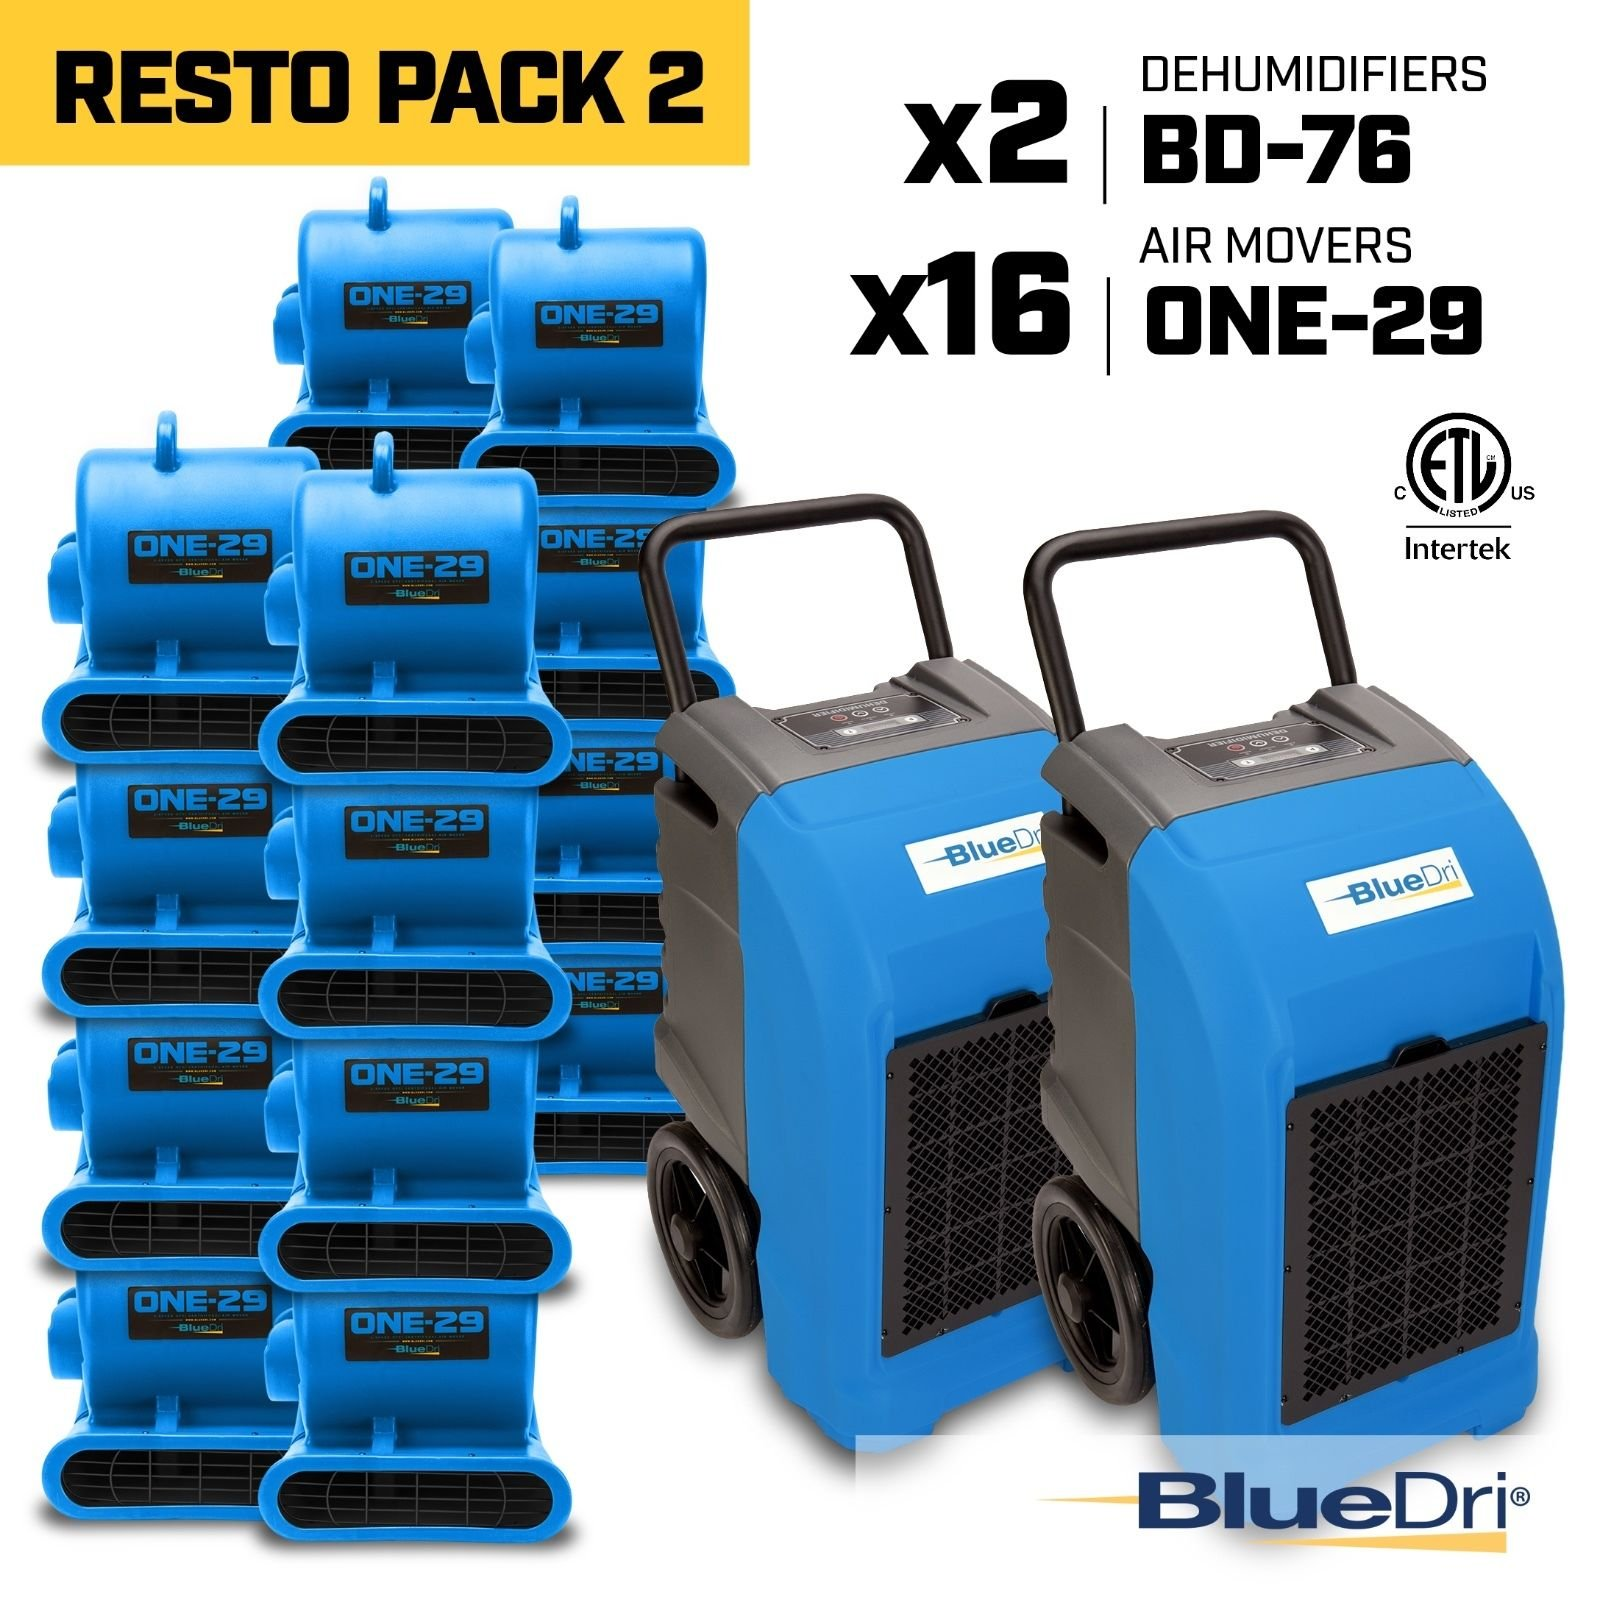 Blue BlueDri RestoPack2 includes 2x 76 Pint PPD Stackable Commercial Dehumidifiers 16x 1/3 HP 3 Speed 2.9 Amp One-29 Stackable Air Mover